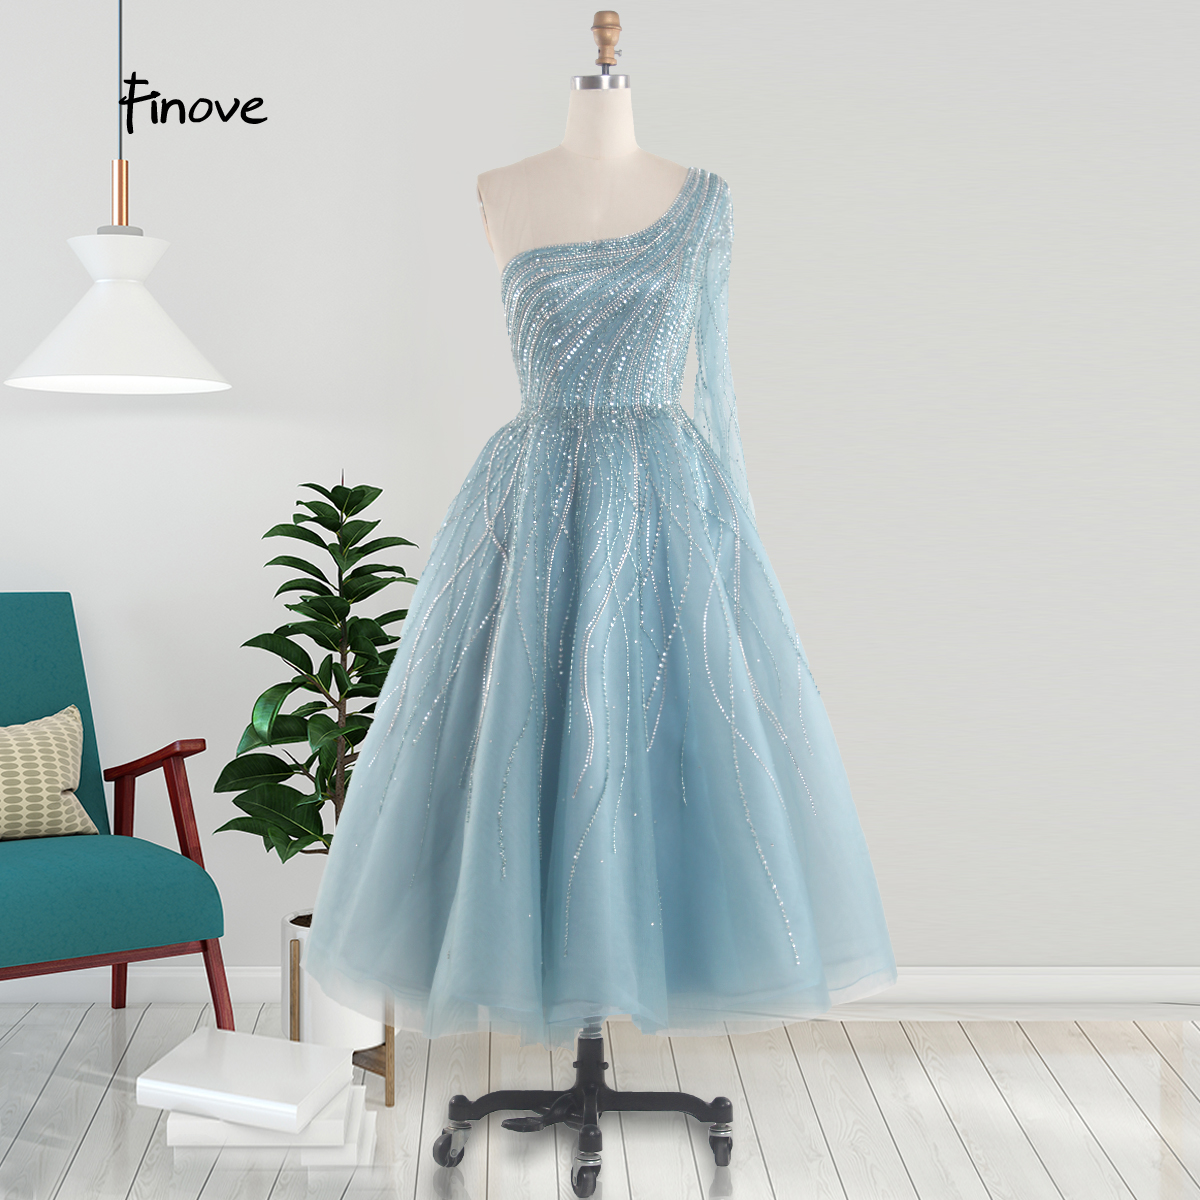 Short Prom Dresses Luxury Beading With Crystal Robe De Princesse Femme Elegant One Shoulder Long Sleeve Party Dress Gown